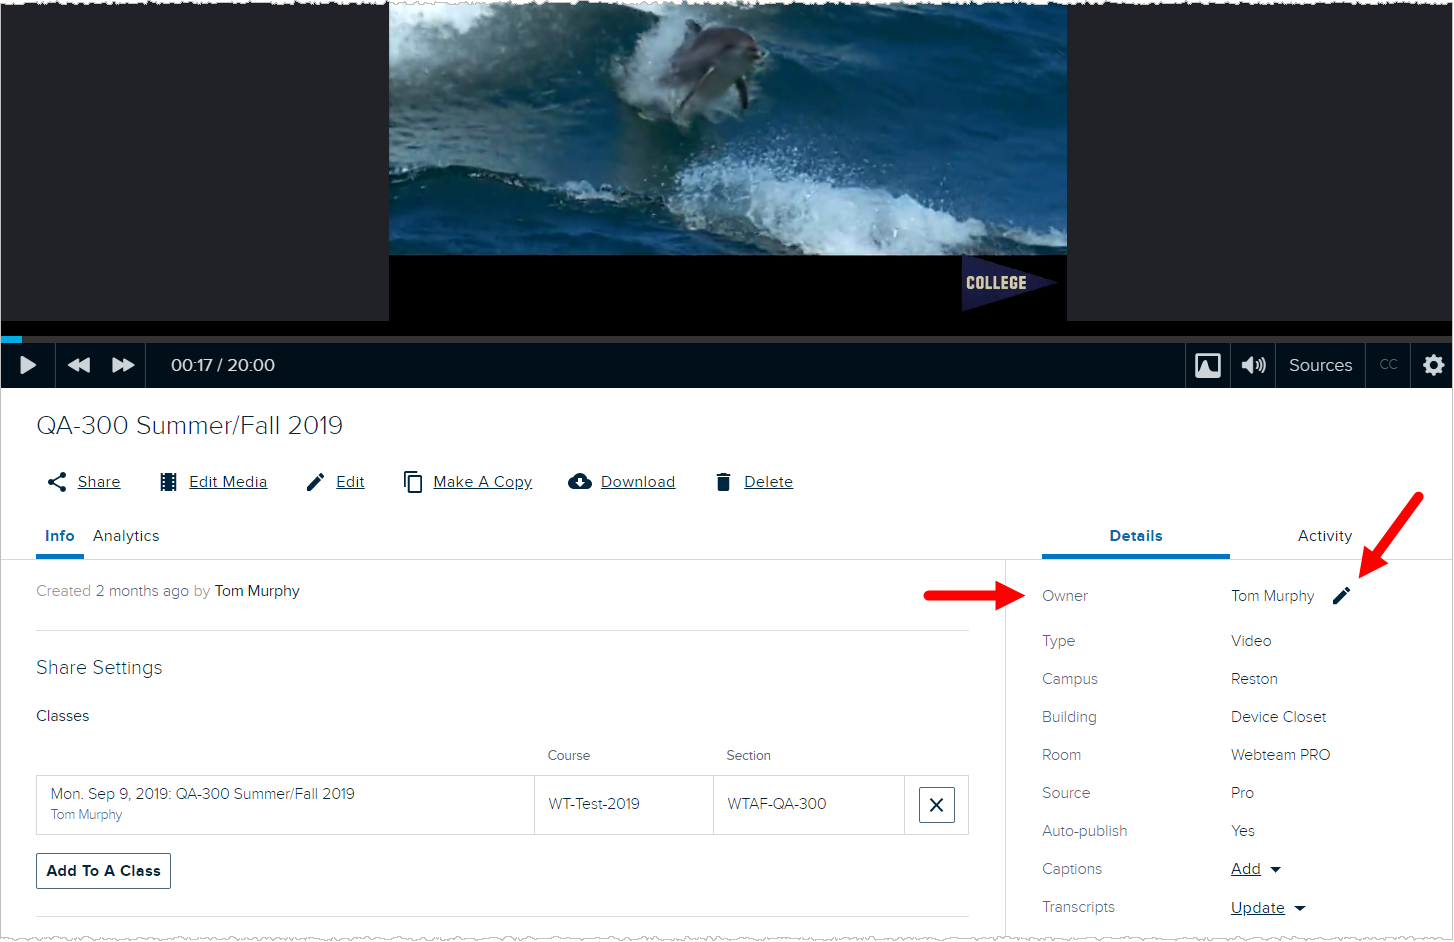 Admin media details page with owner field identified for changing using steps as described